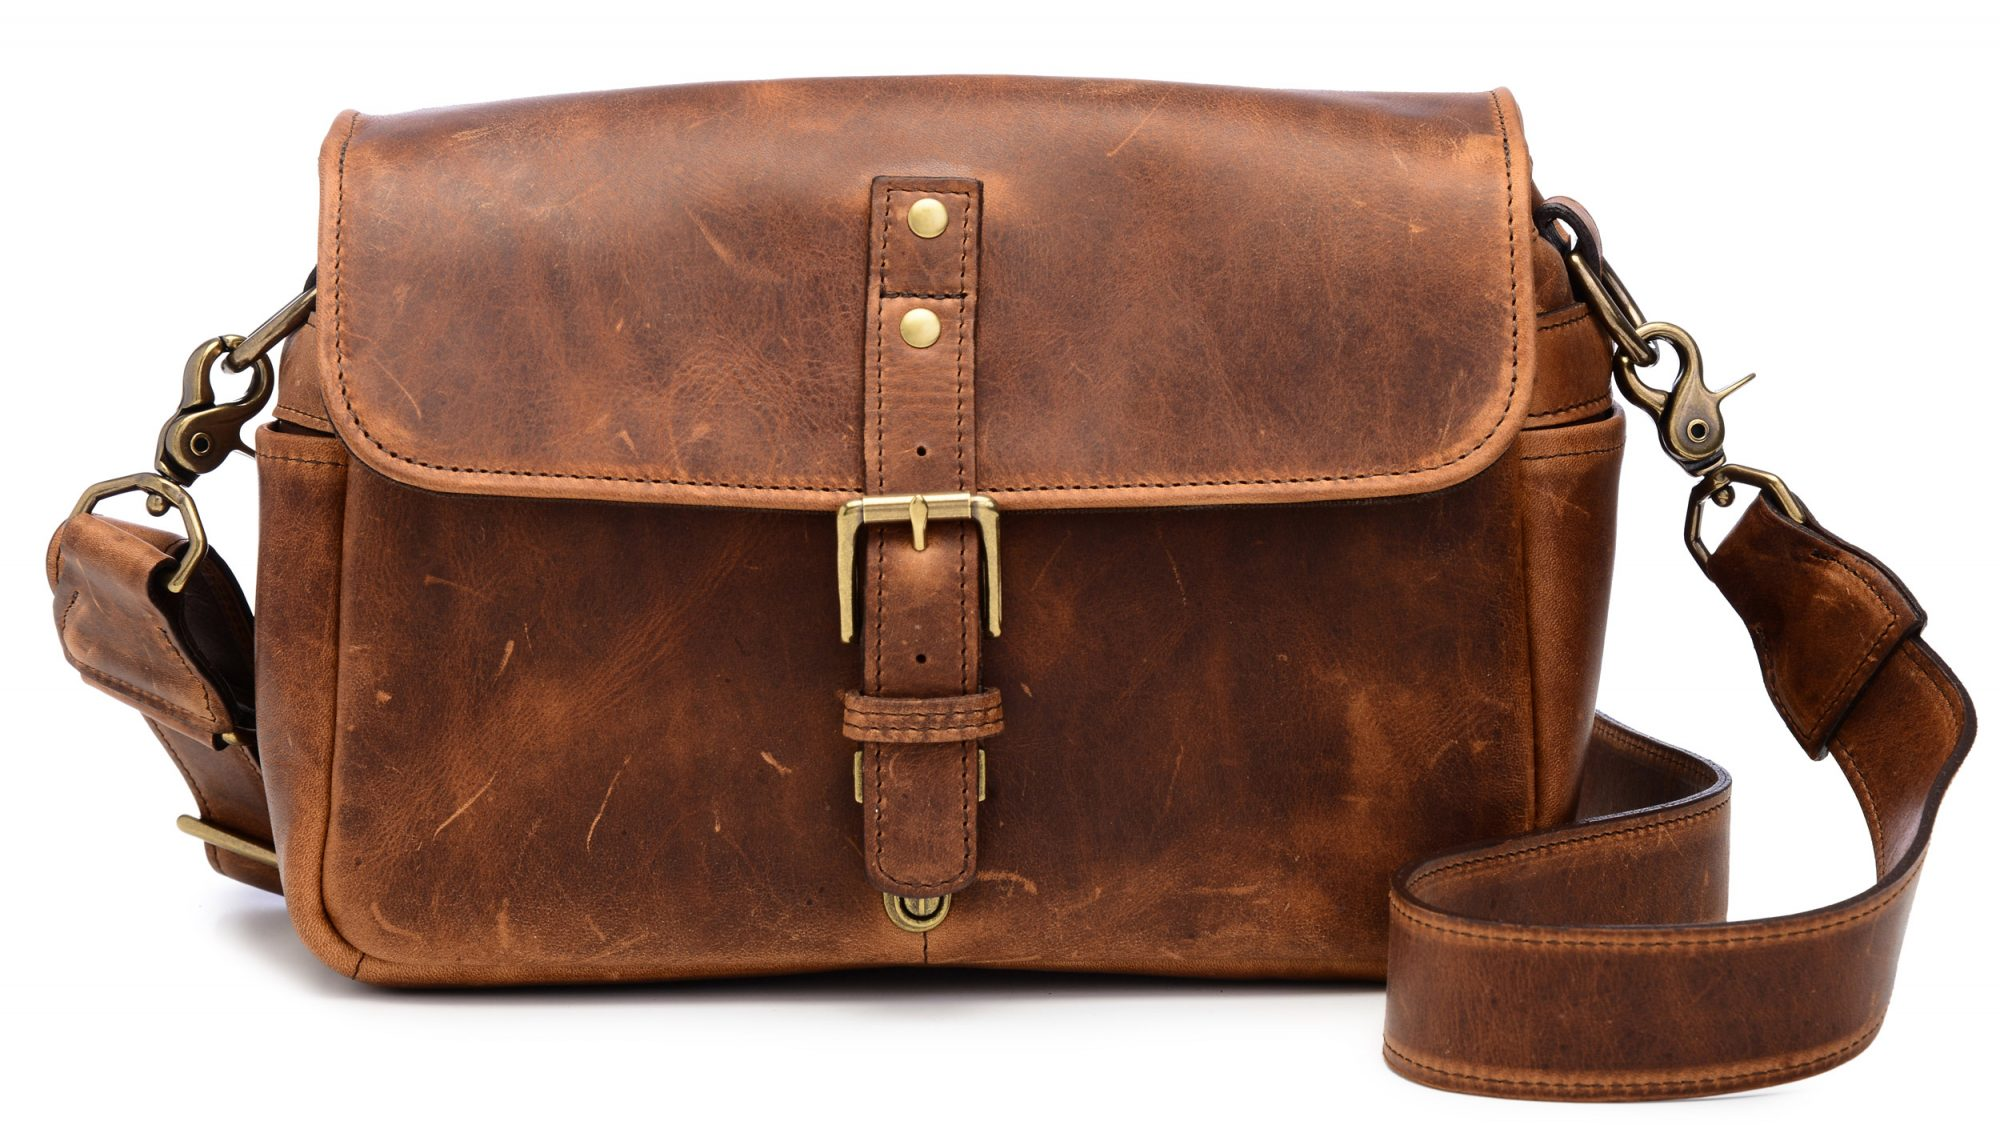 The Ona Leather Bowery Bag